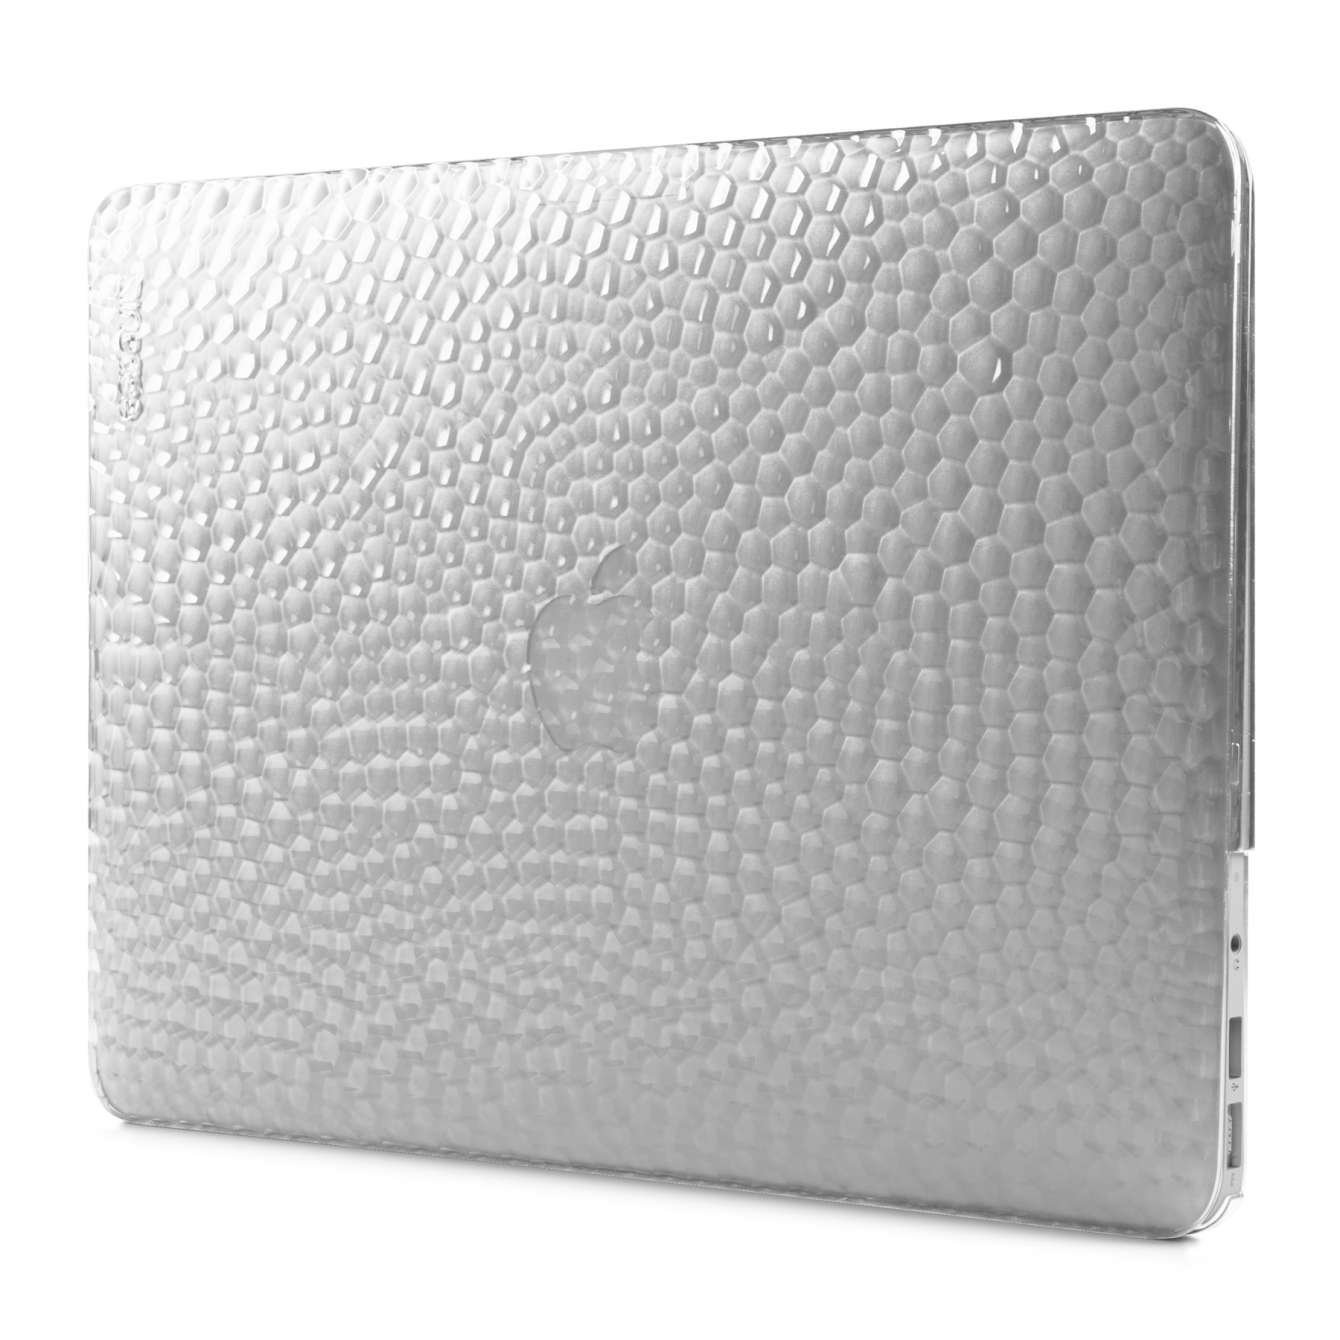 buy online 12550 90496 Buy Incase Hammered Hardshell Case for Macbook Air 11